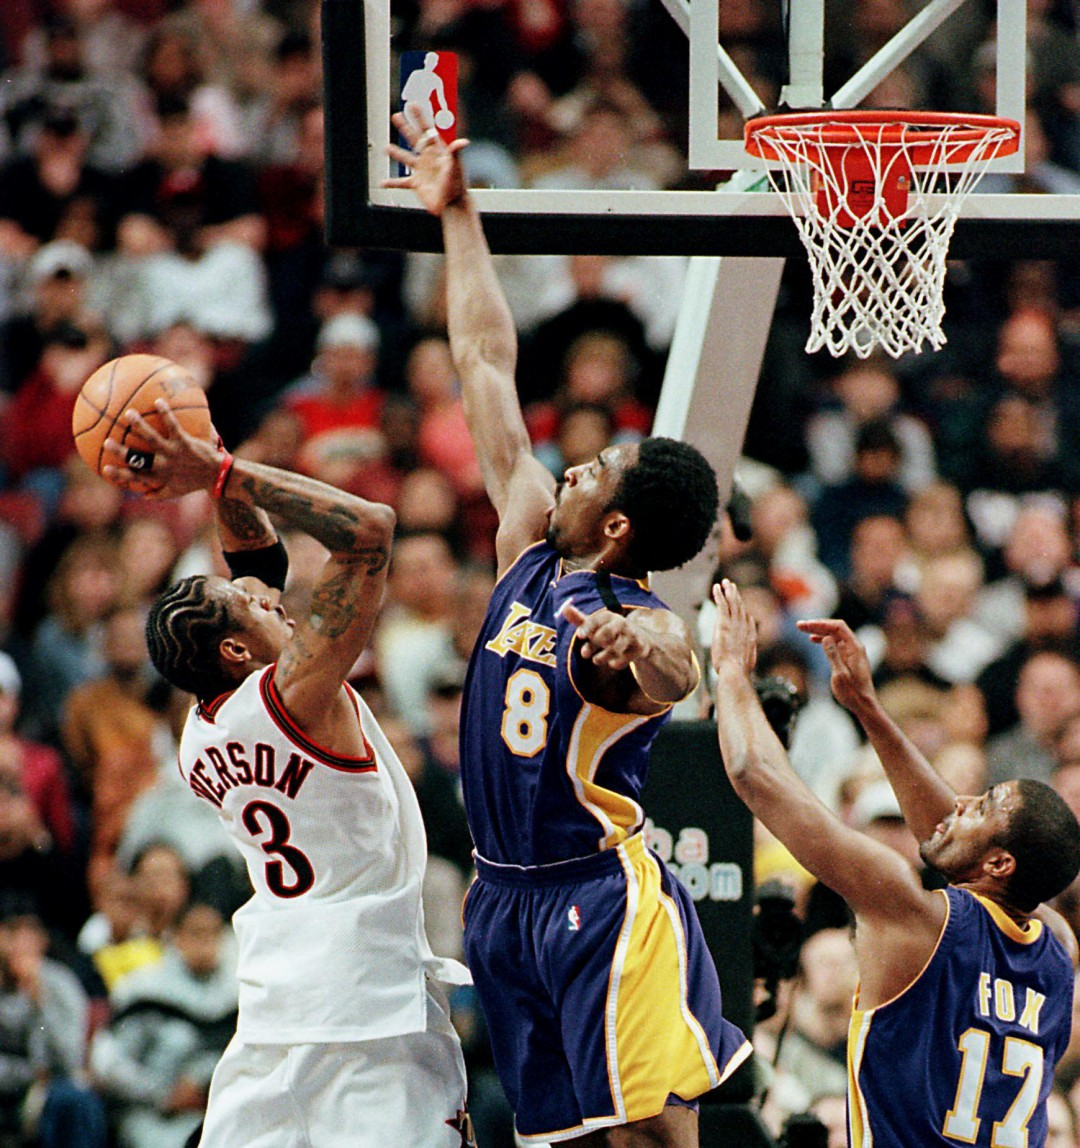 「Obsession Is Natural」- Kobe Brayant 防守 Allen Iverson-2